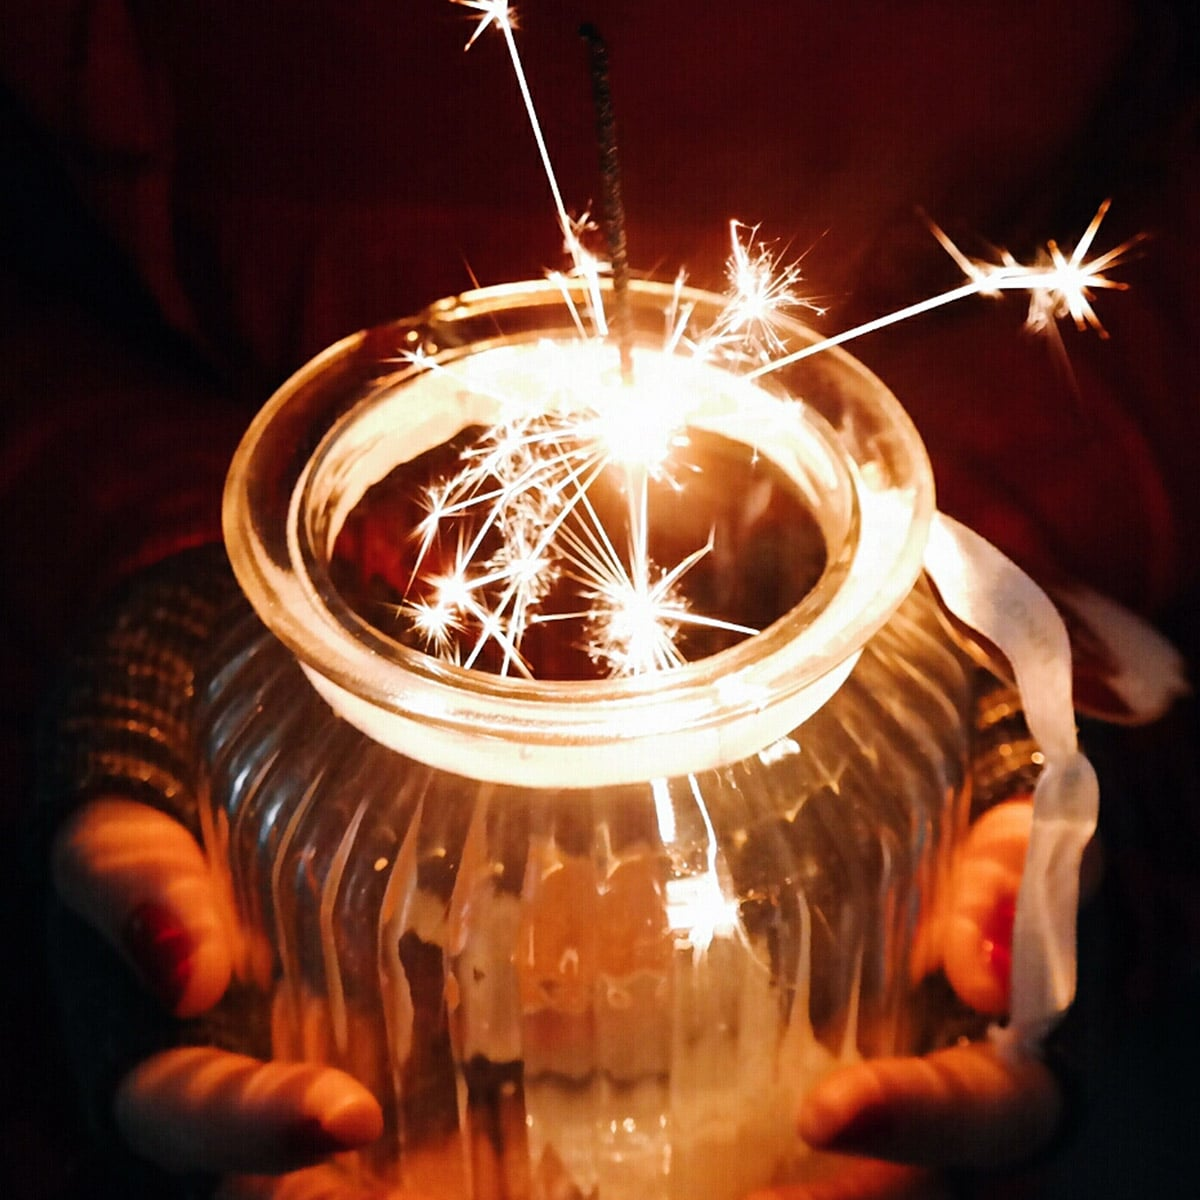 Image of a Bride Holding a Small Vase Full of Sparklers